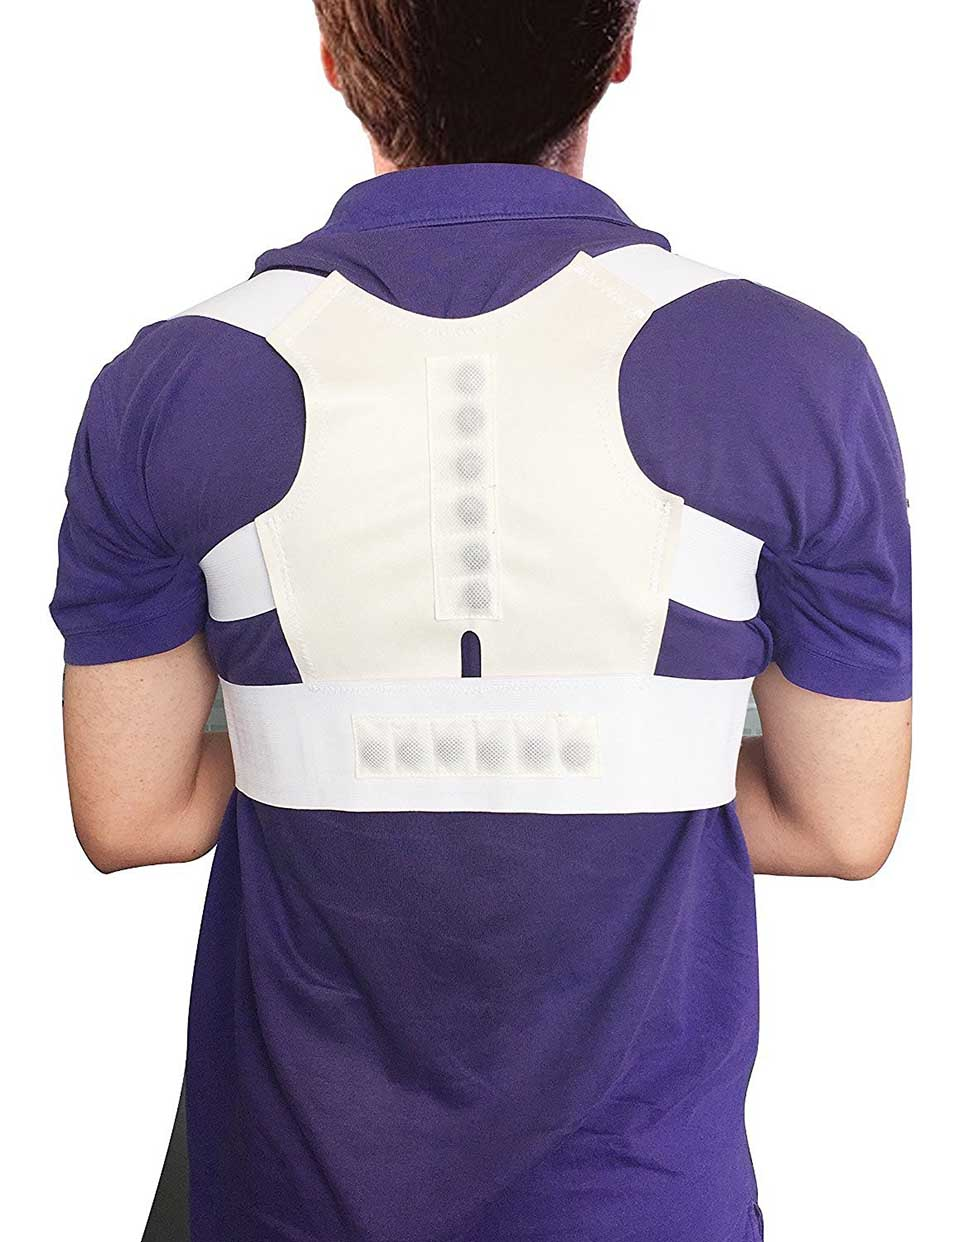 Professional Back Posture Corrector Vest Shoulder Posture Corrector for font b Women b font Orthopedic font